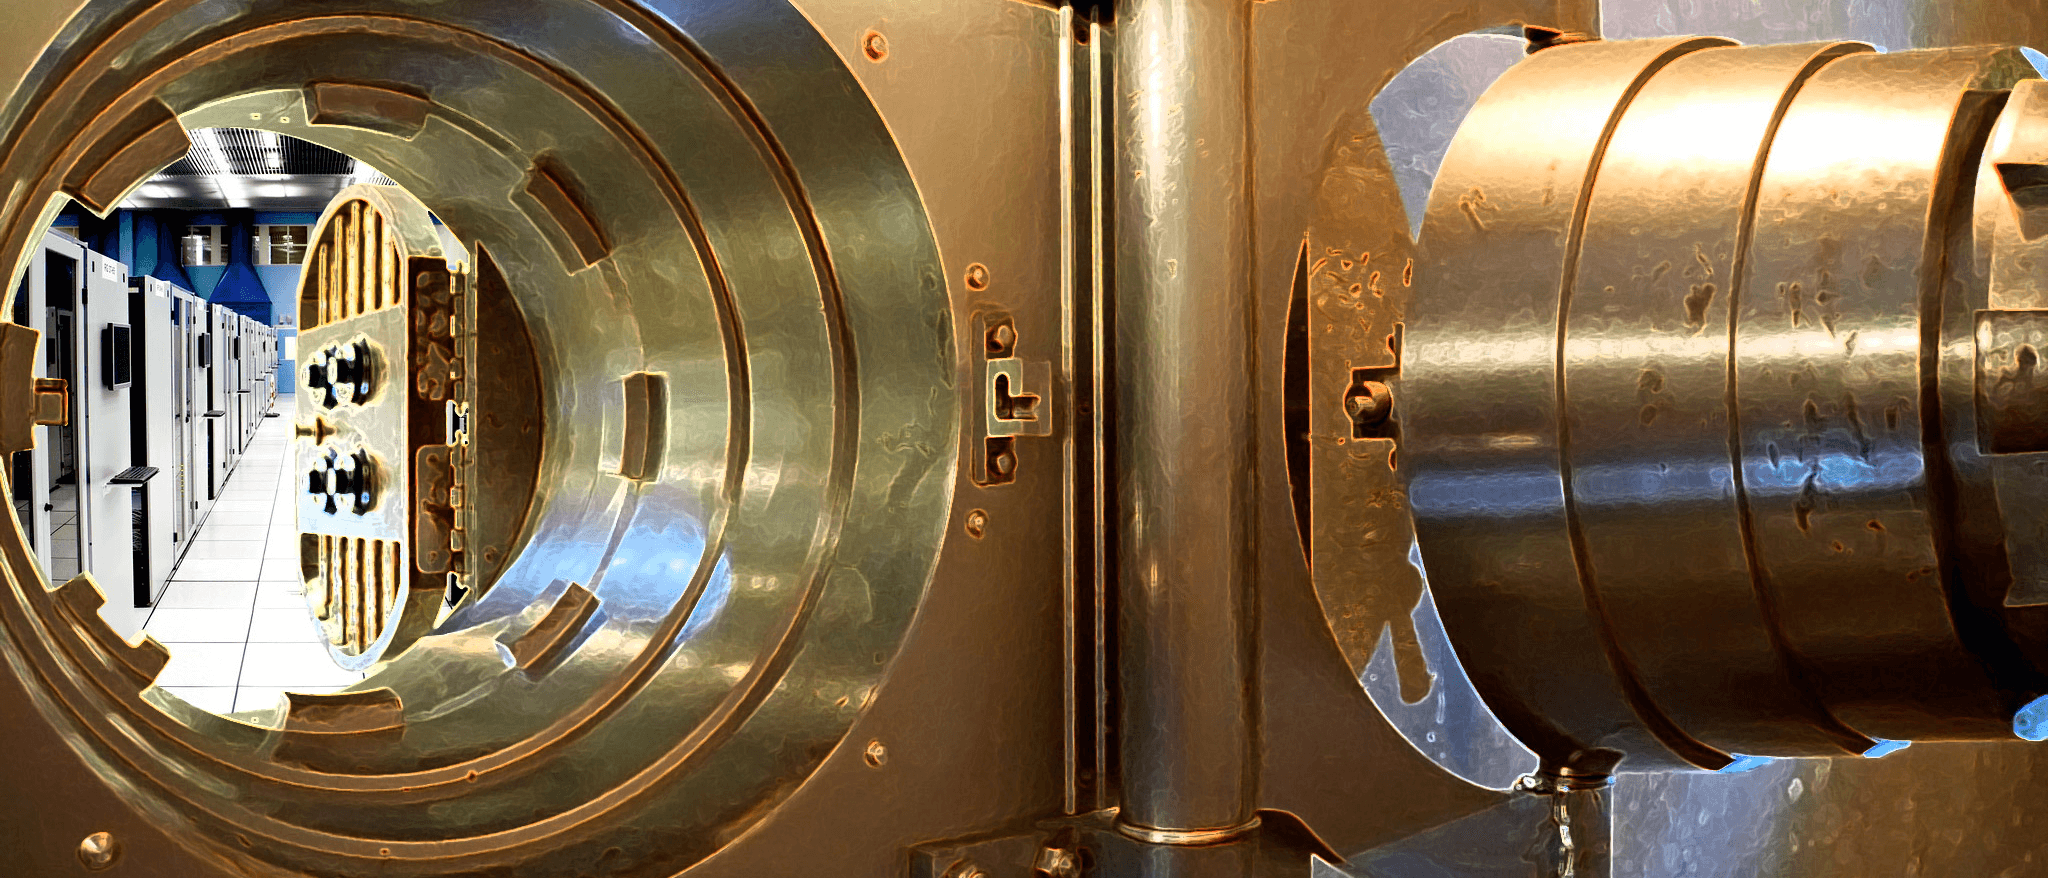 Financial firms prepare to be tested by an Open Banking software future